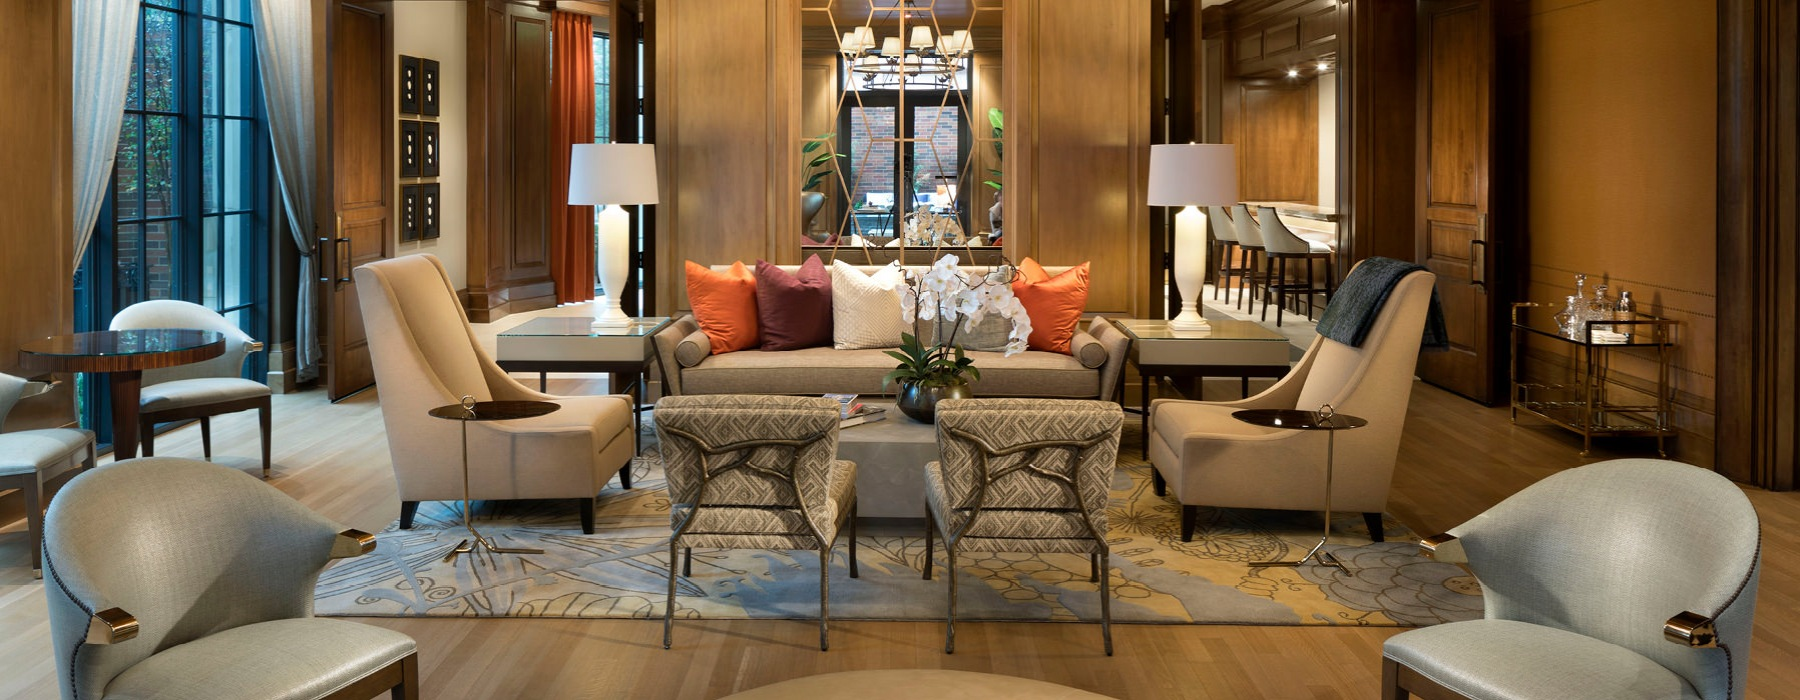 Lobby has plush seating with extravagant touches